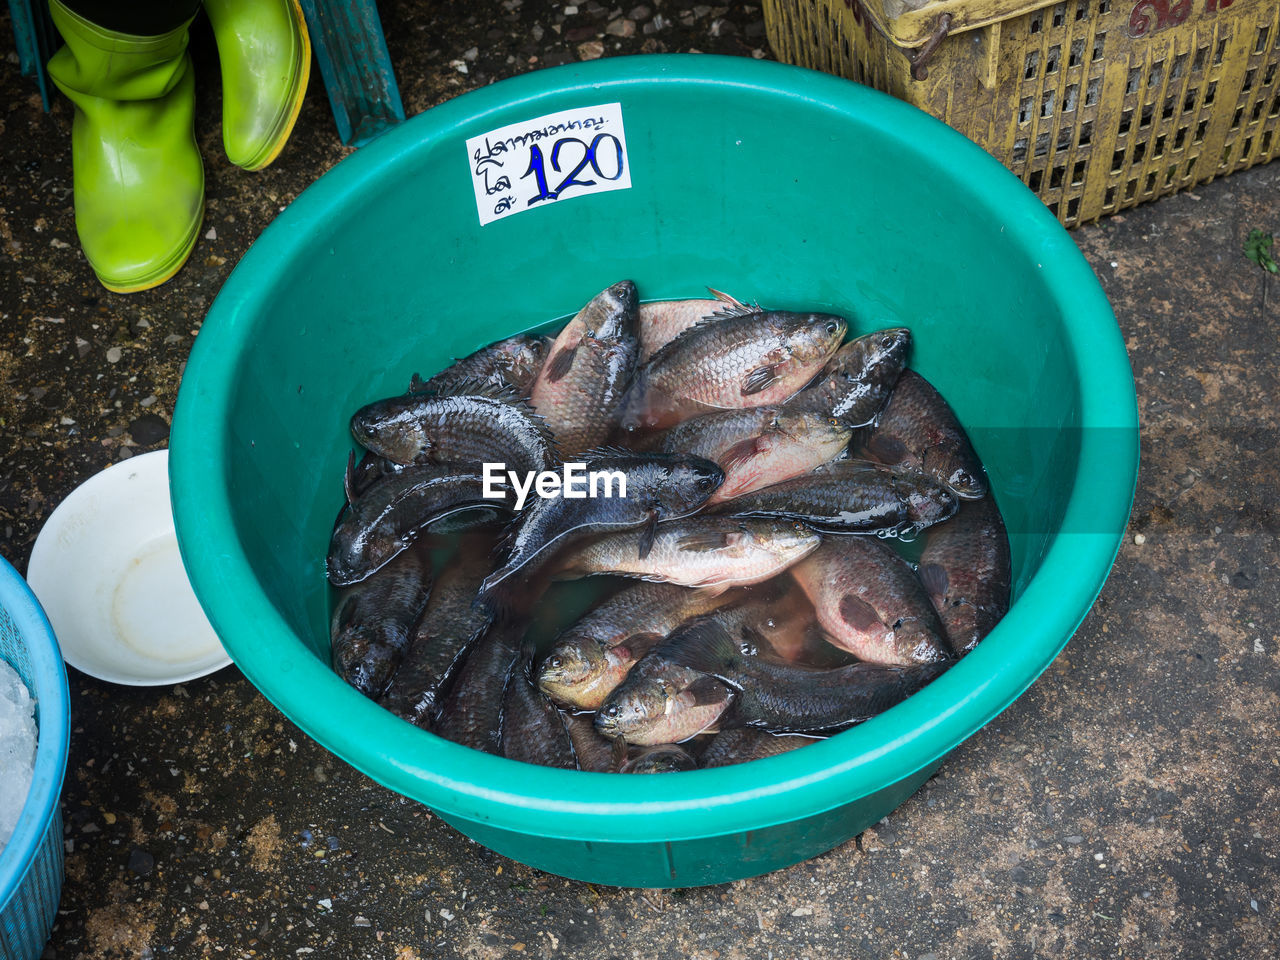 High Angle View Of Fresh Fish In Bucket For Sale On Mahachai Fish Market, Thailand